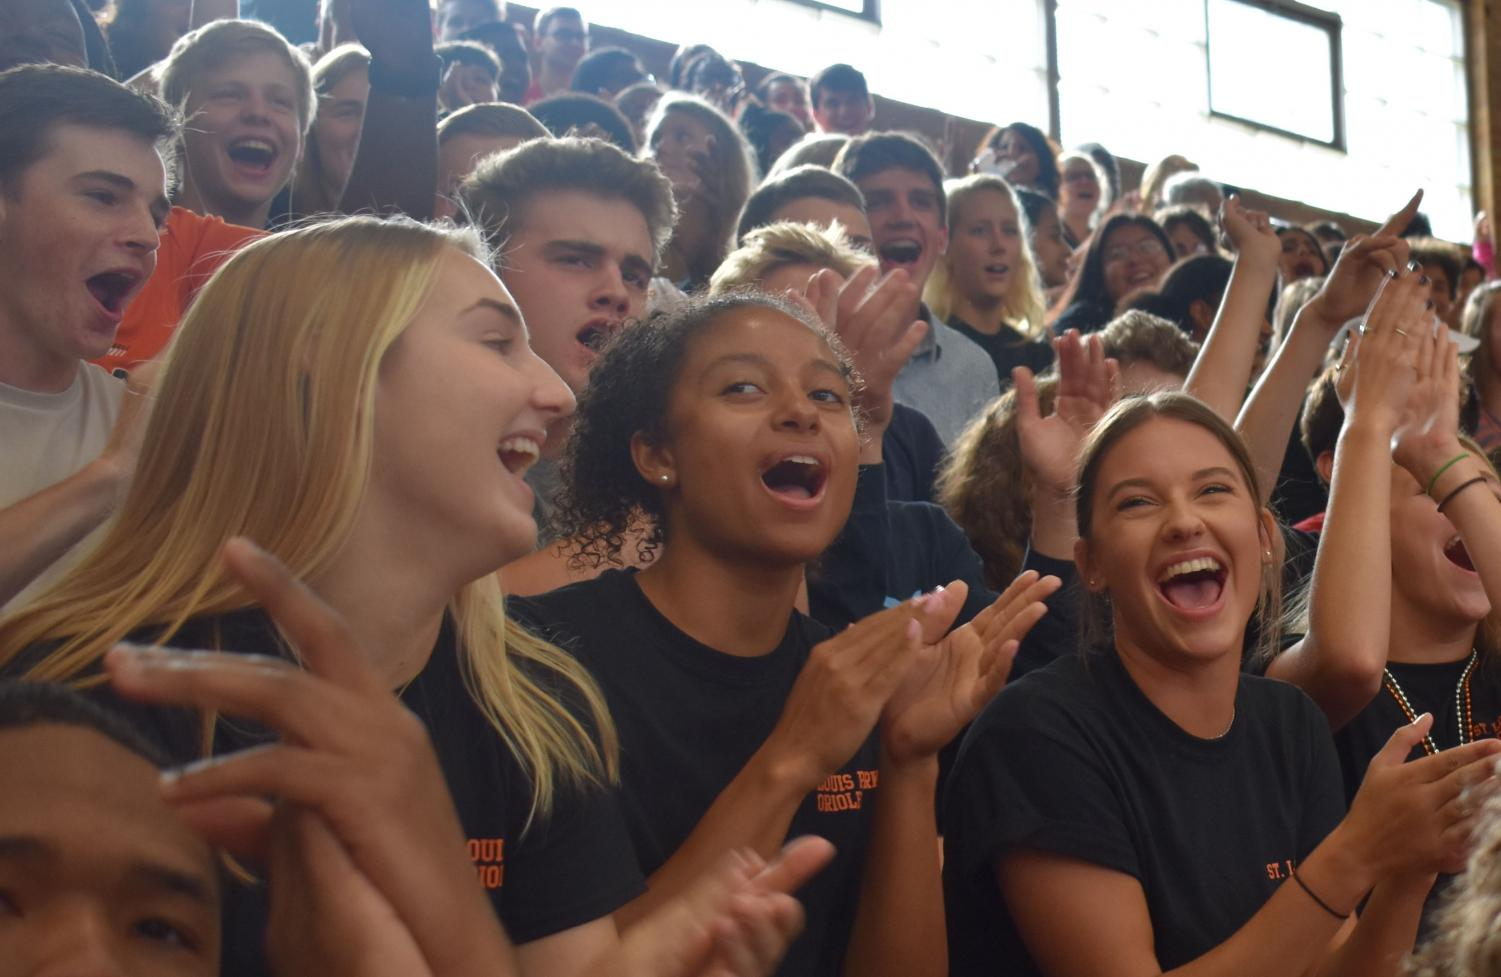 Seniors Daisy Widboom, Madison McIntosh and Violet Huber cheer at the pep fest Sept. 14. Homecoming week has activities and dress codes every day leading up to the dance 7 p.m. Sept 22.